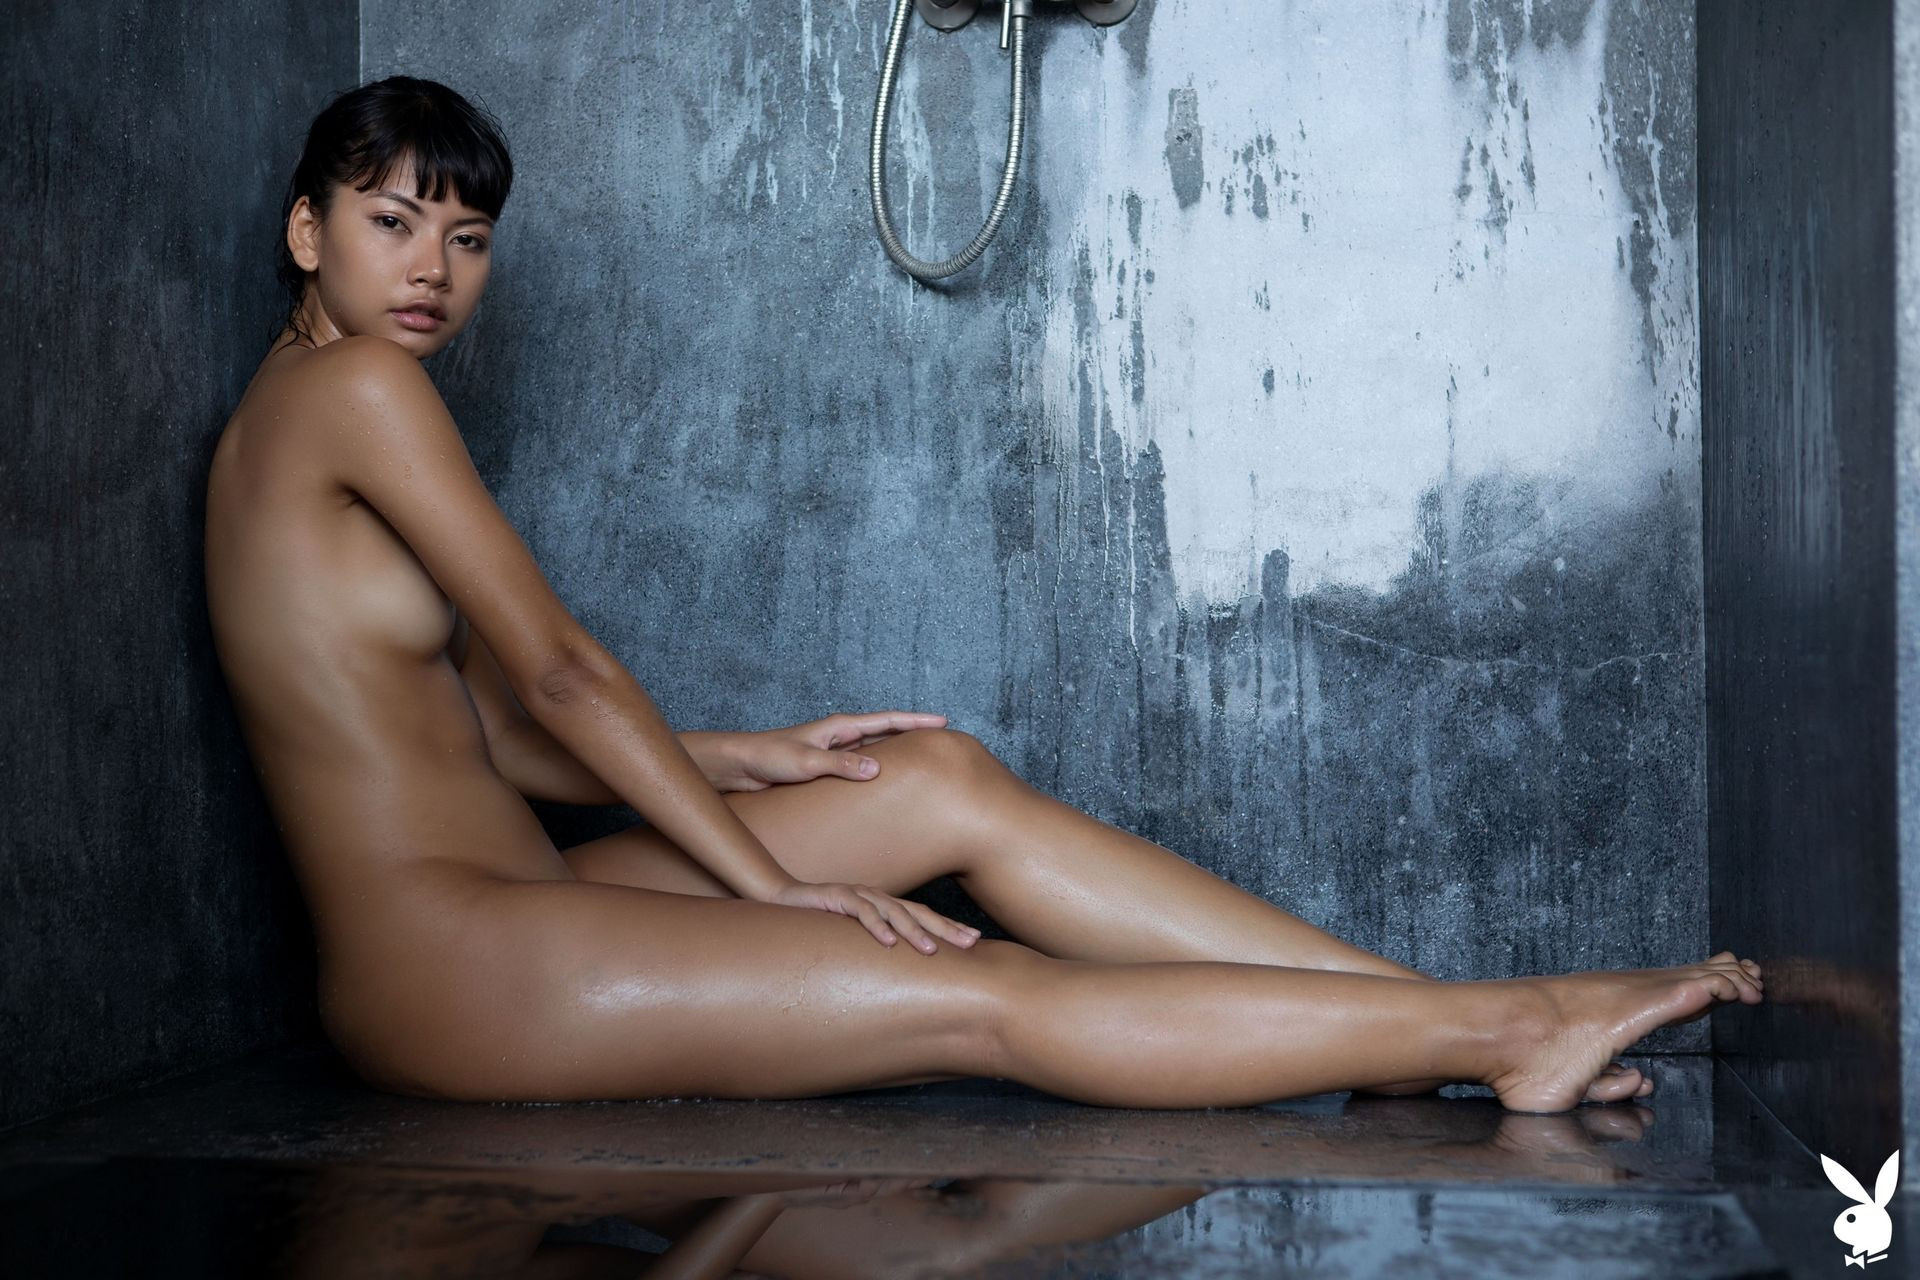 Cara Pin Nude Soft Shower thefappening.nu 11